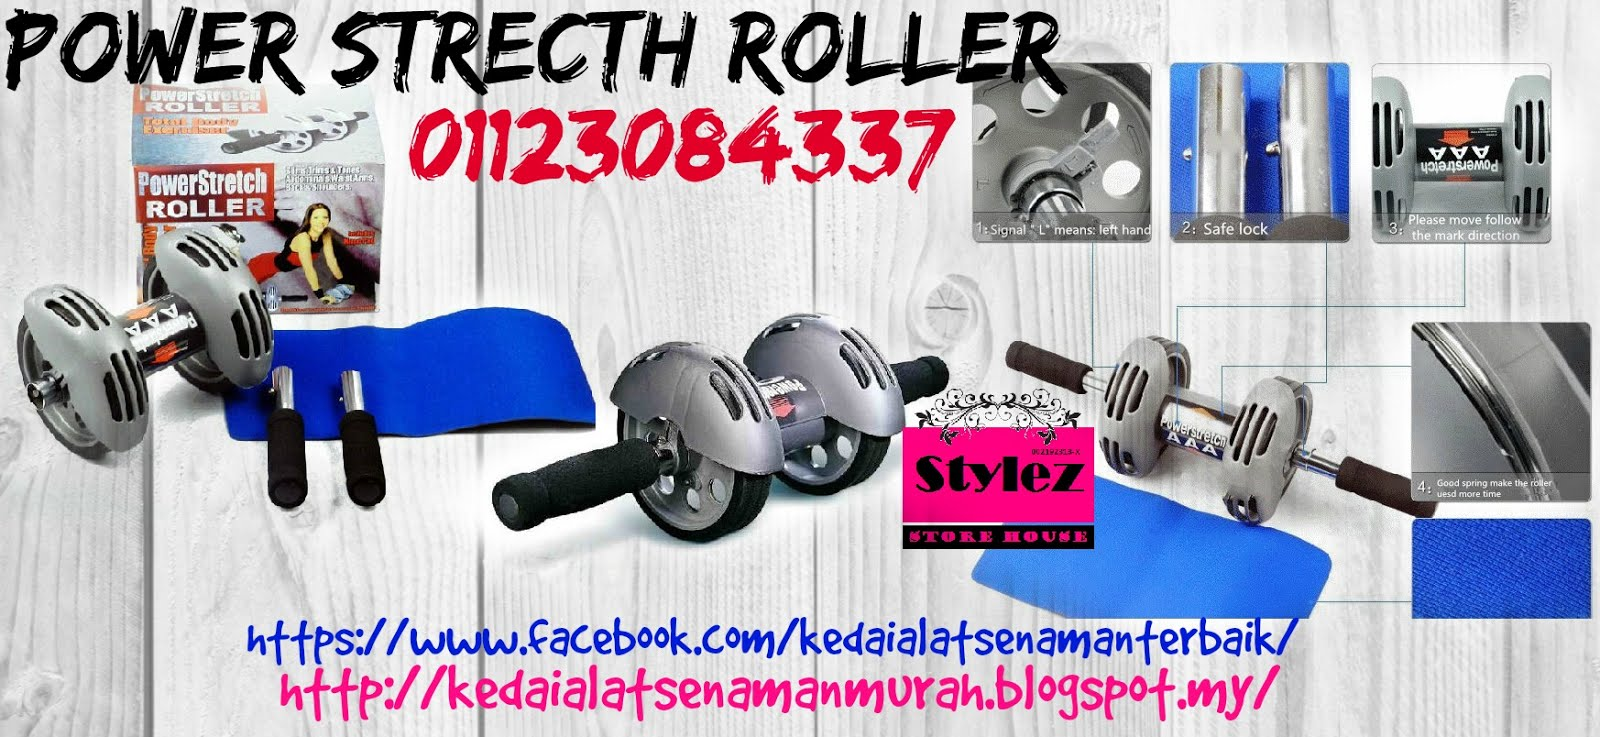 POWER STRECTH ROLLER